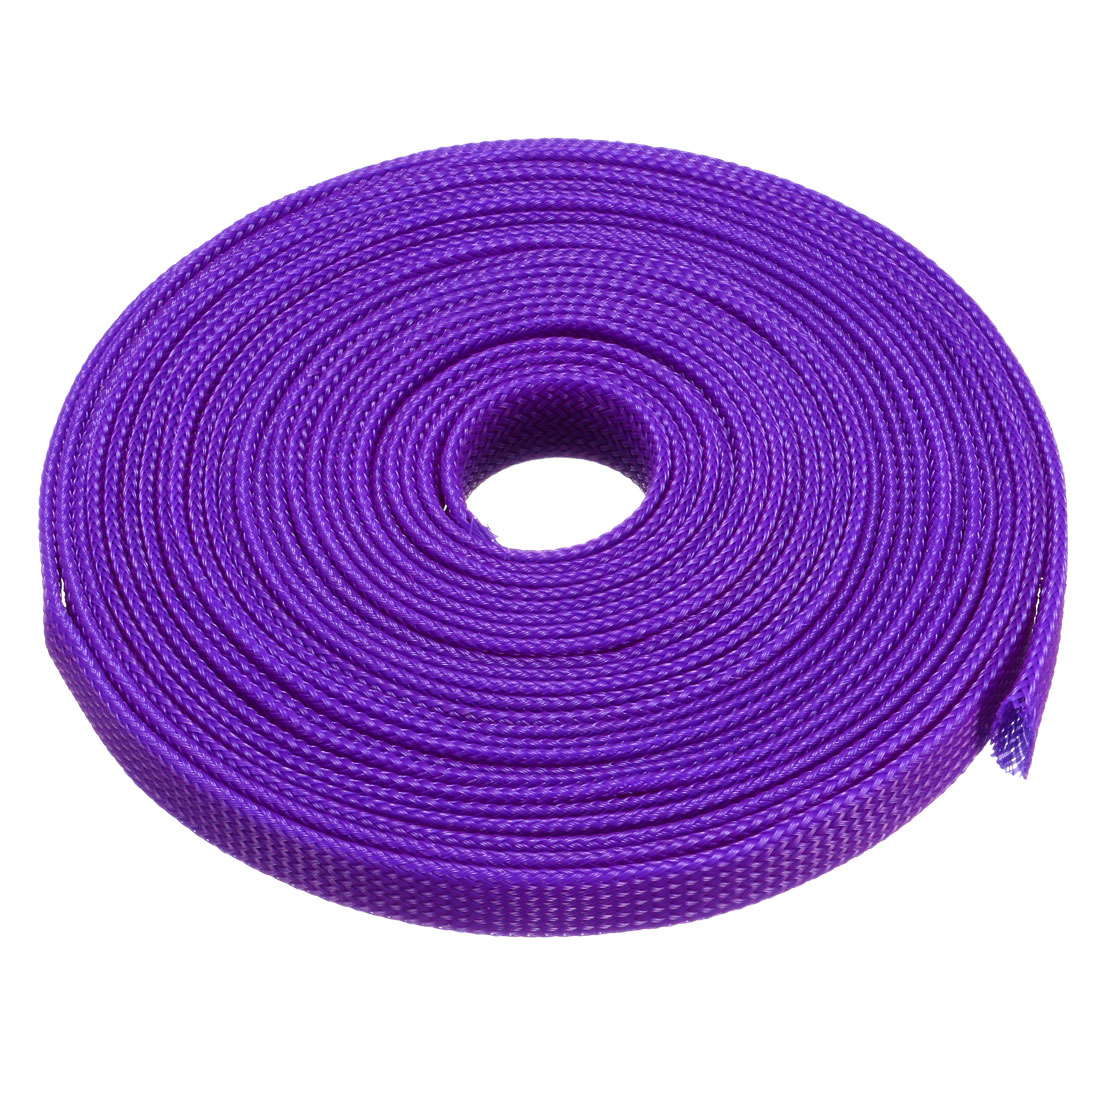 PET Braided Sleeving 16.4 Feet 5m Expandable Cable Wrap 8mm Diameter Wire Sheath Purple